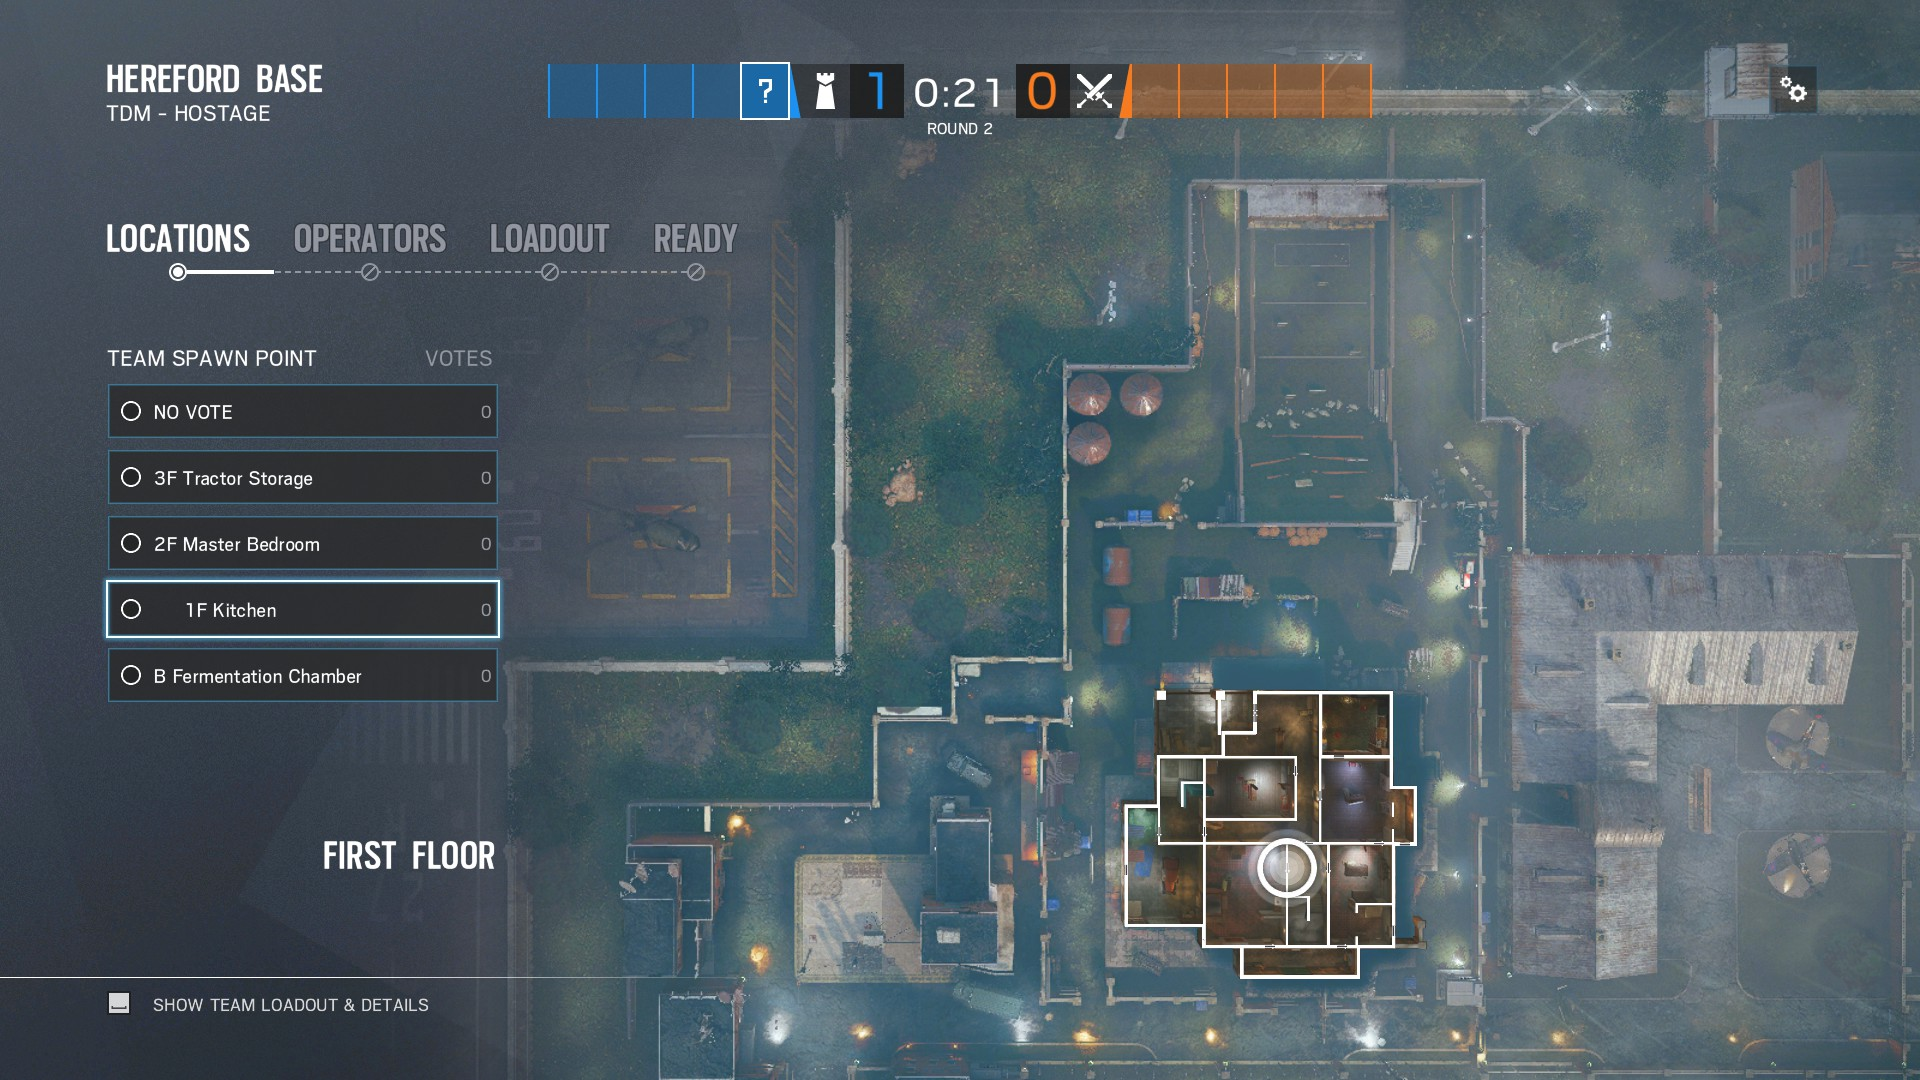 Defender objective points for Hereford map in Rainbow Six Siege